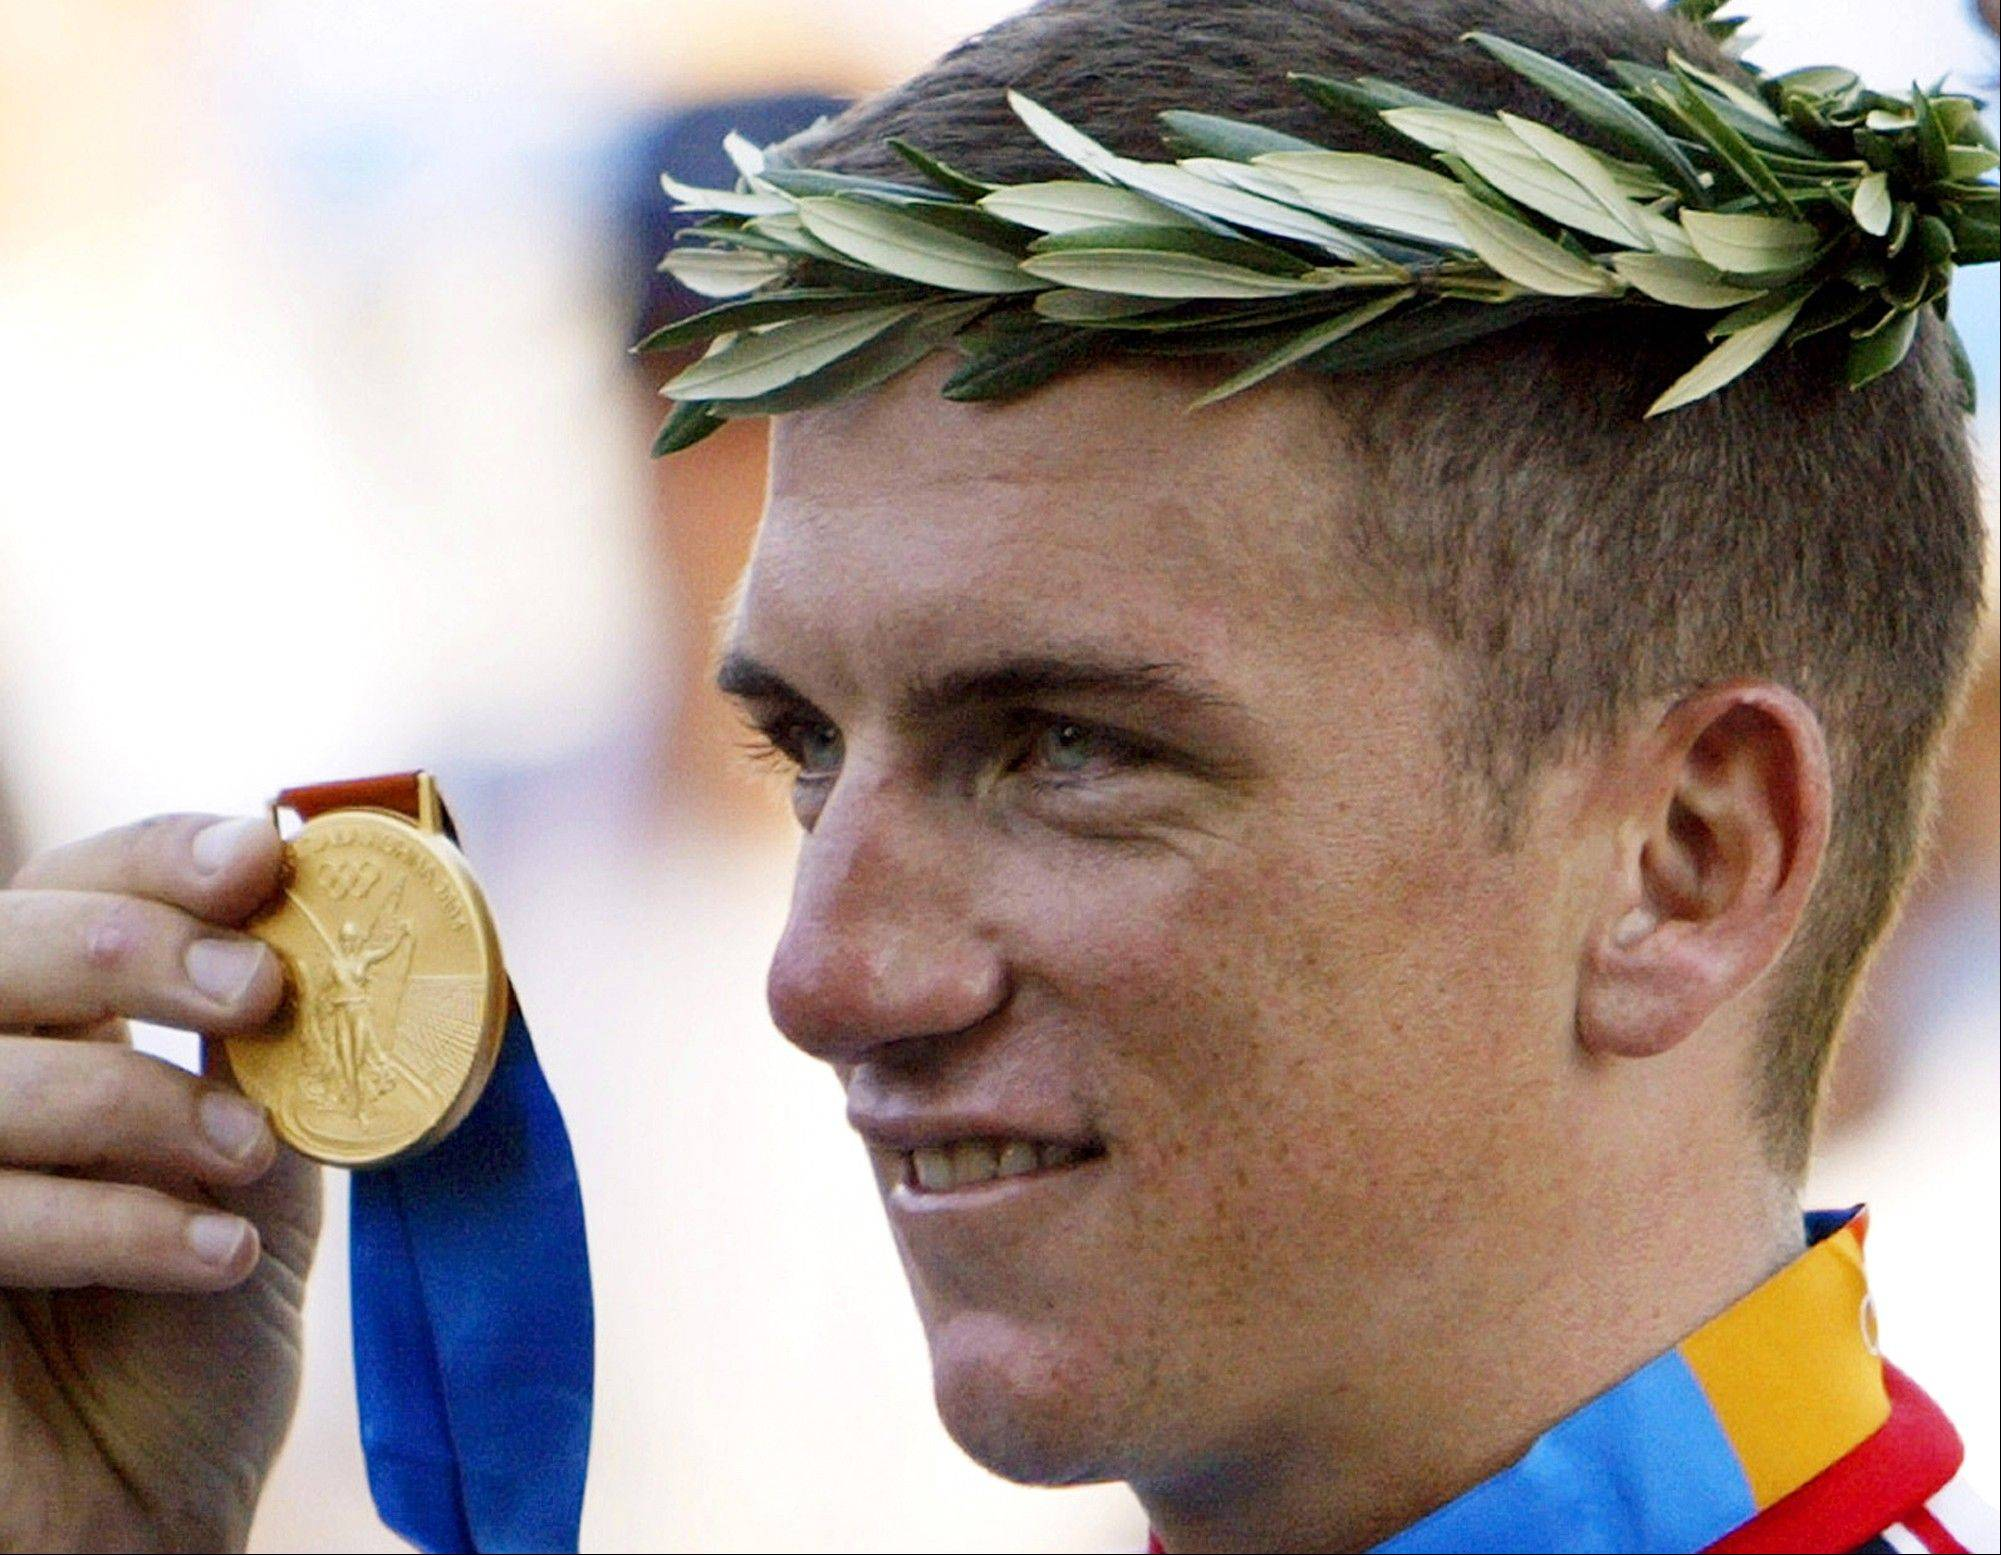 The IOC is set to formally strip American cyclist Tyler Hamilton of his gold from the 2004 Athens Games and reassign the medals after his admission of doping, according to an Olympic official familiar with the case.